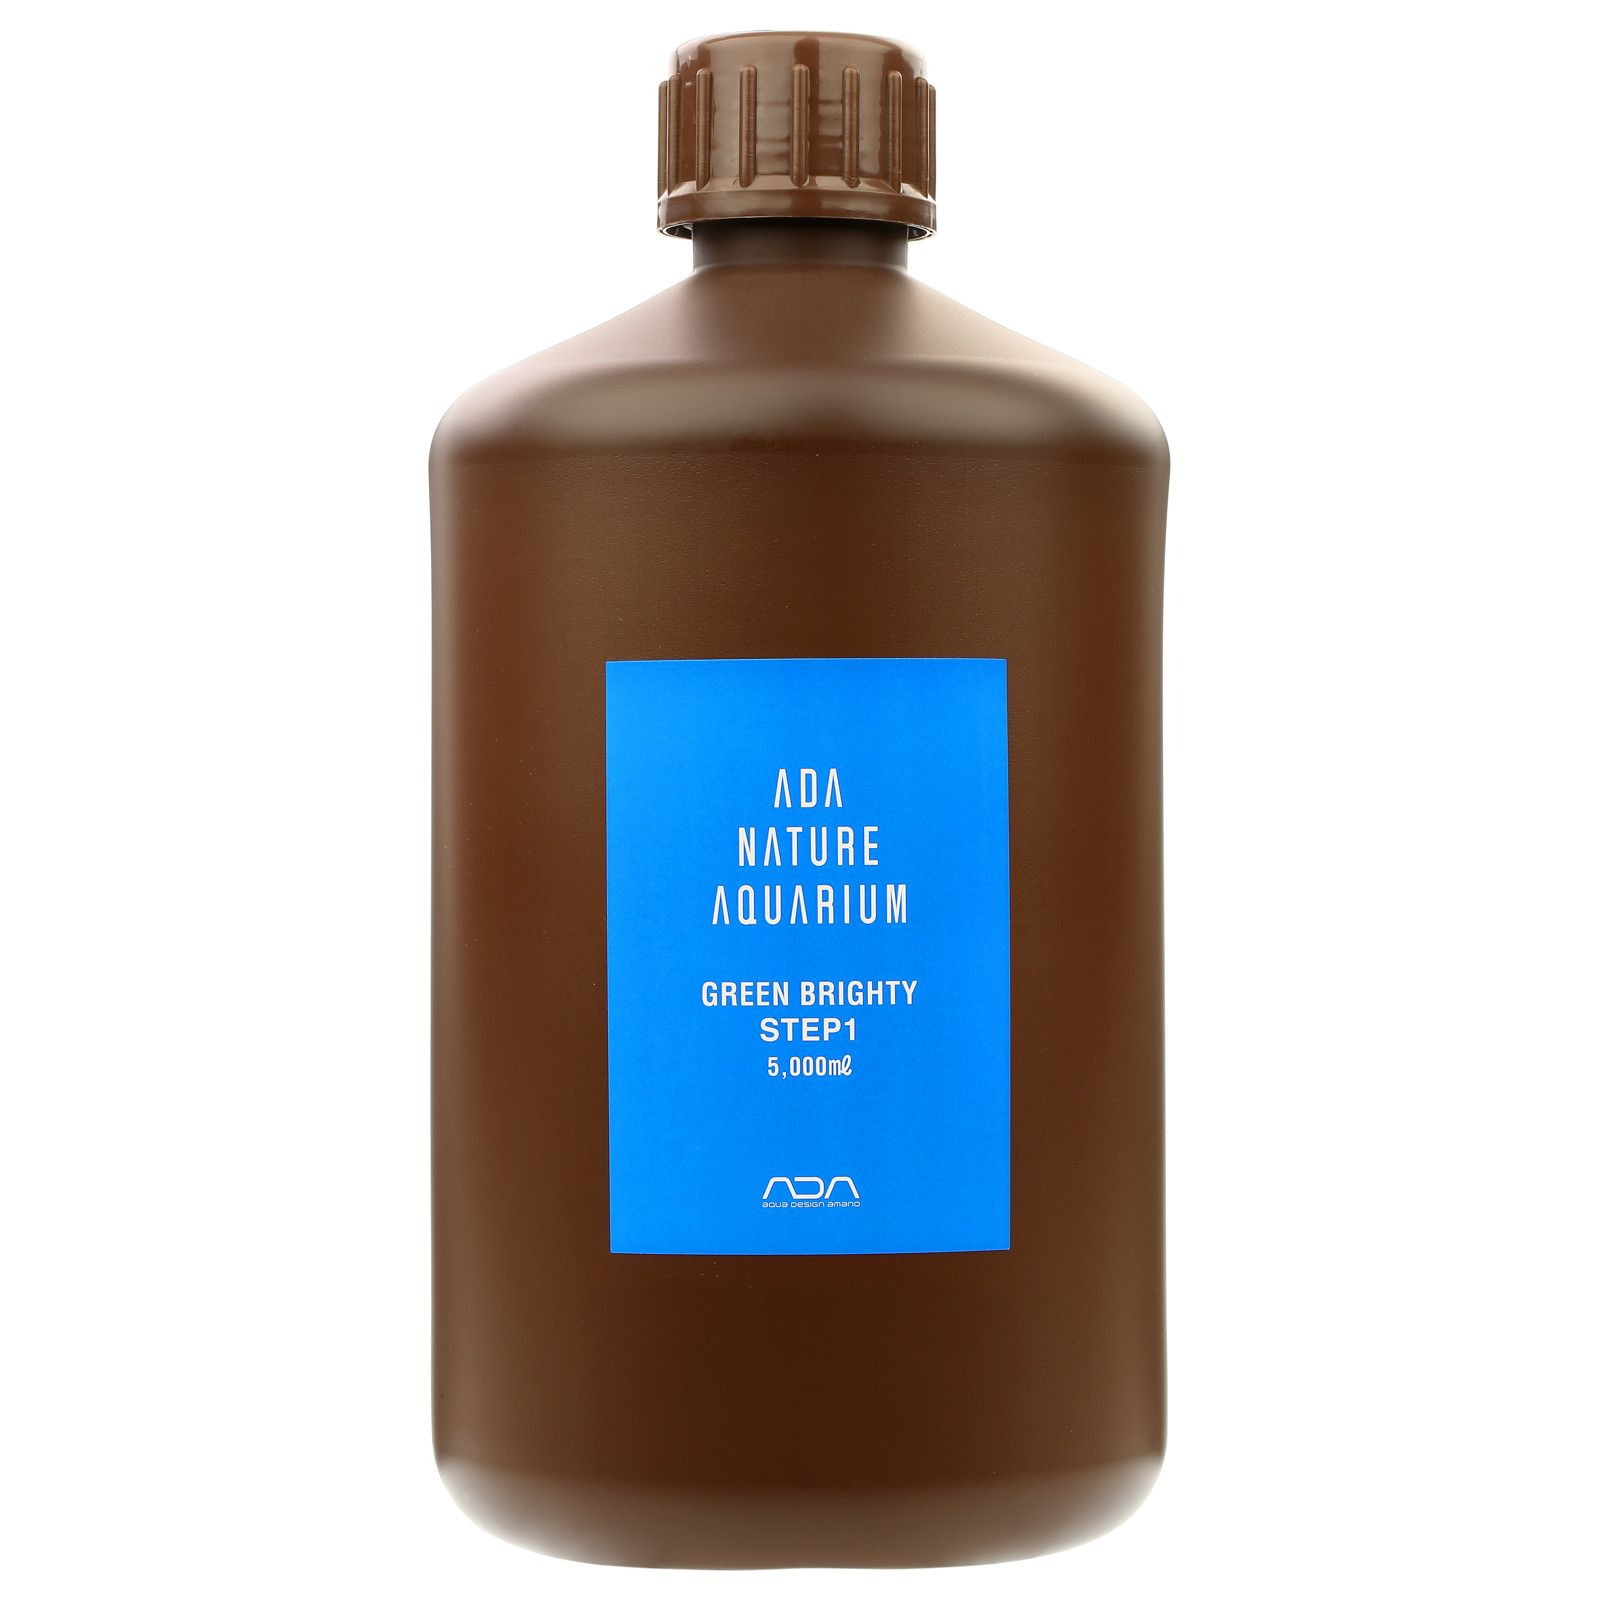 ADA - Green Brighty - Step 1 - 500 ml